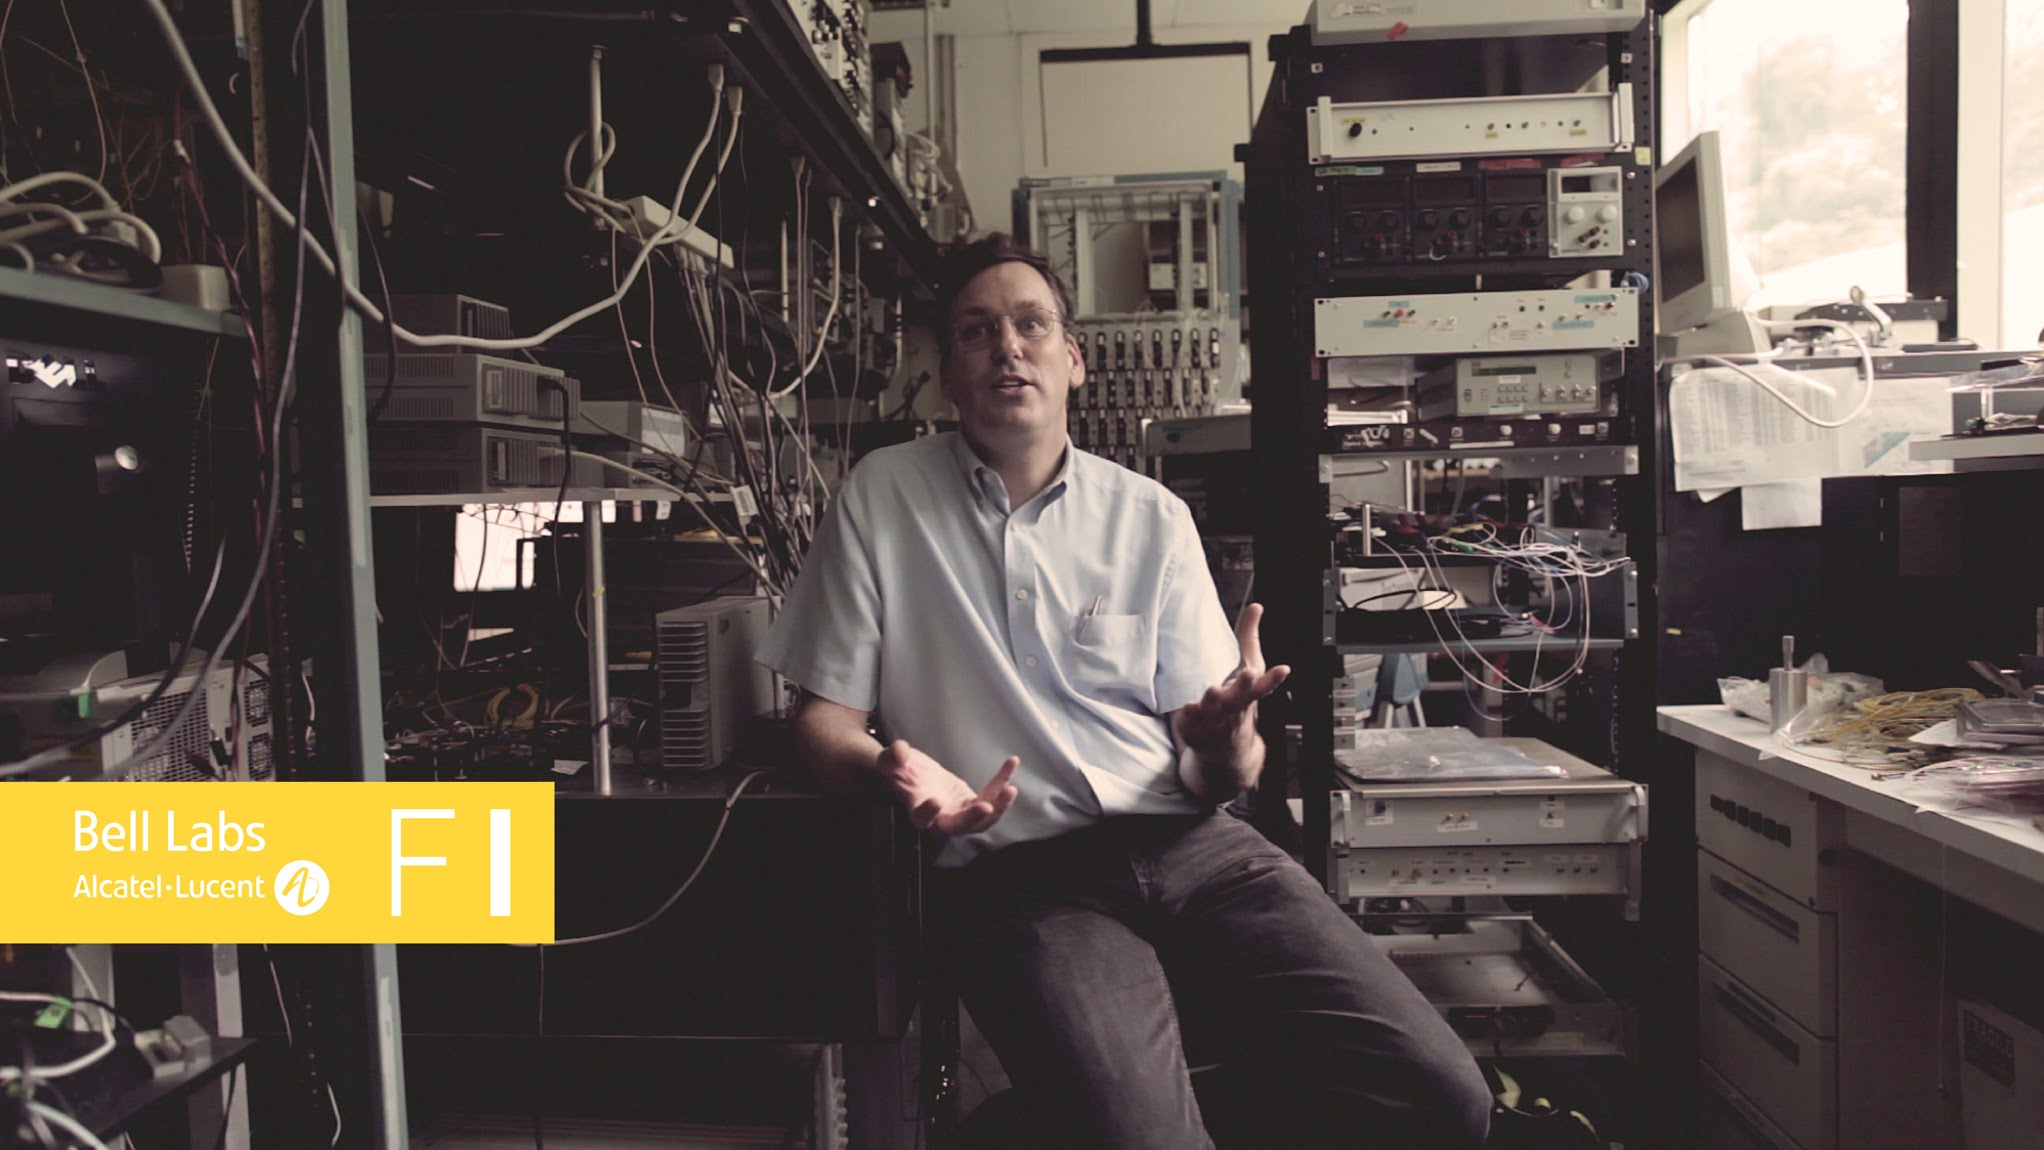 Beautiful Video Explains How Light's Been Harnessed For Communication